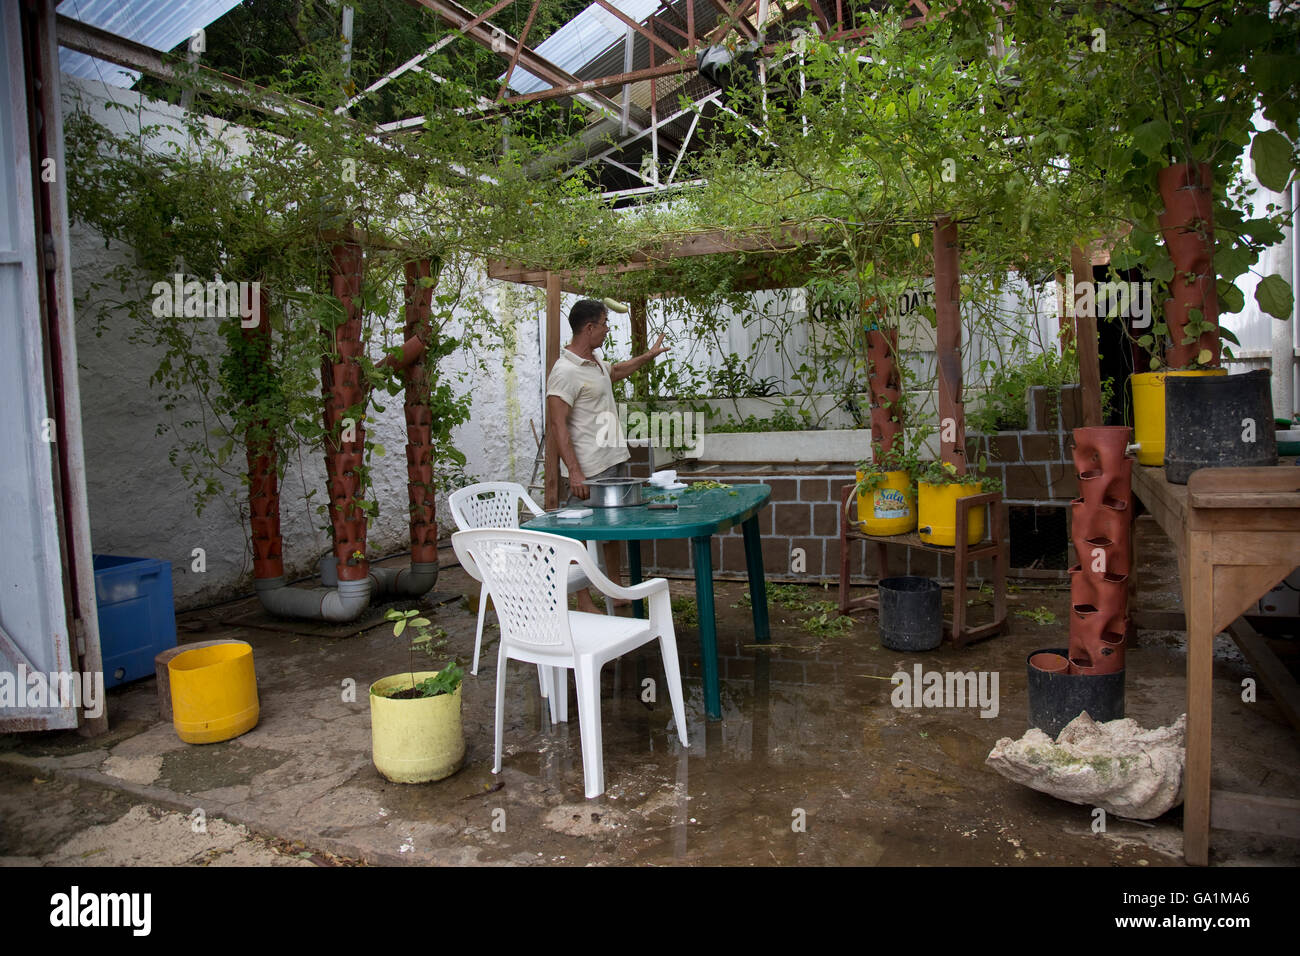 Sustainable self-sustaining vegetable growing in confined space Kenya - Stock Image